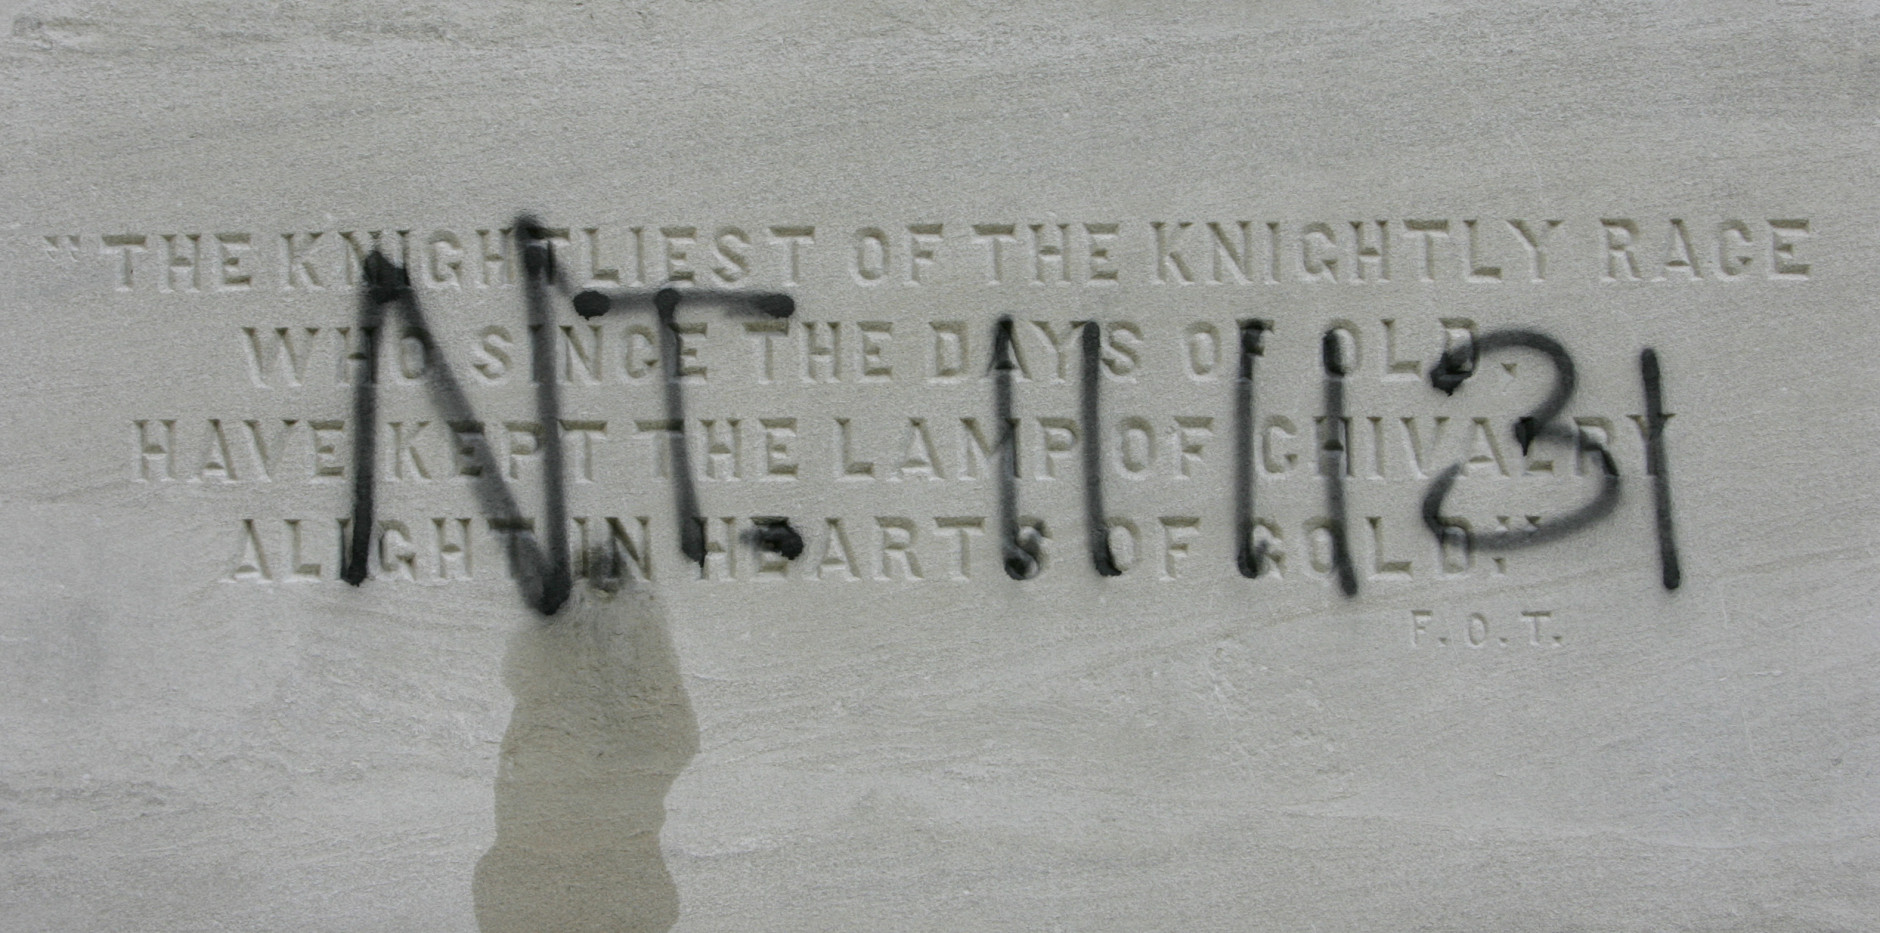 """Graffiti covers the base of the Confederate Memorial on the grounds of the Capitol, Wednesday  Nov. 14, 2007, in Montgomery, Ala. The letters and numbers """"N.T. 11 11 31"""" are believed to be a reference to slave Nat Turner, who was hanged on November 11, 1831 for starting a rebellion. (AP Photo/Rob Carr)"""